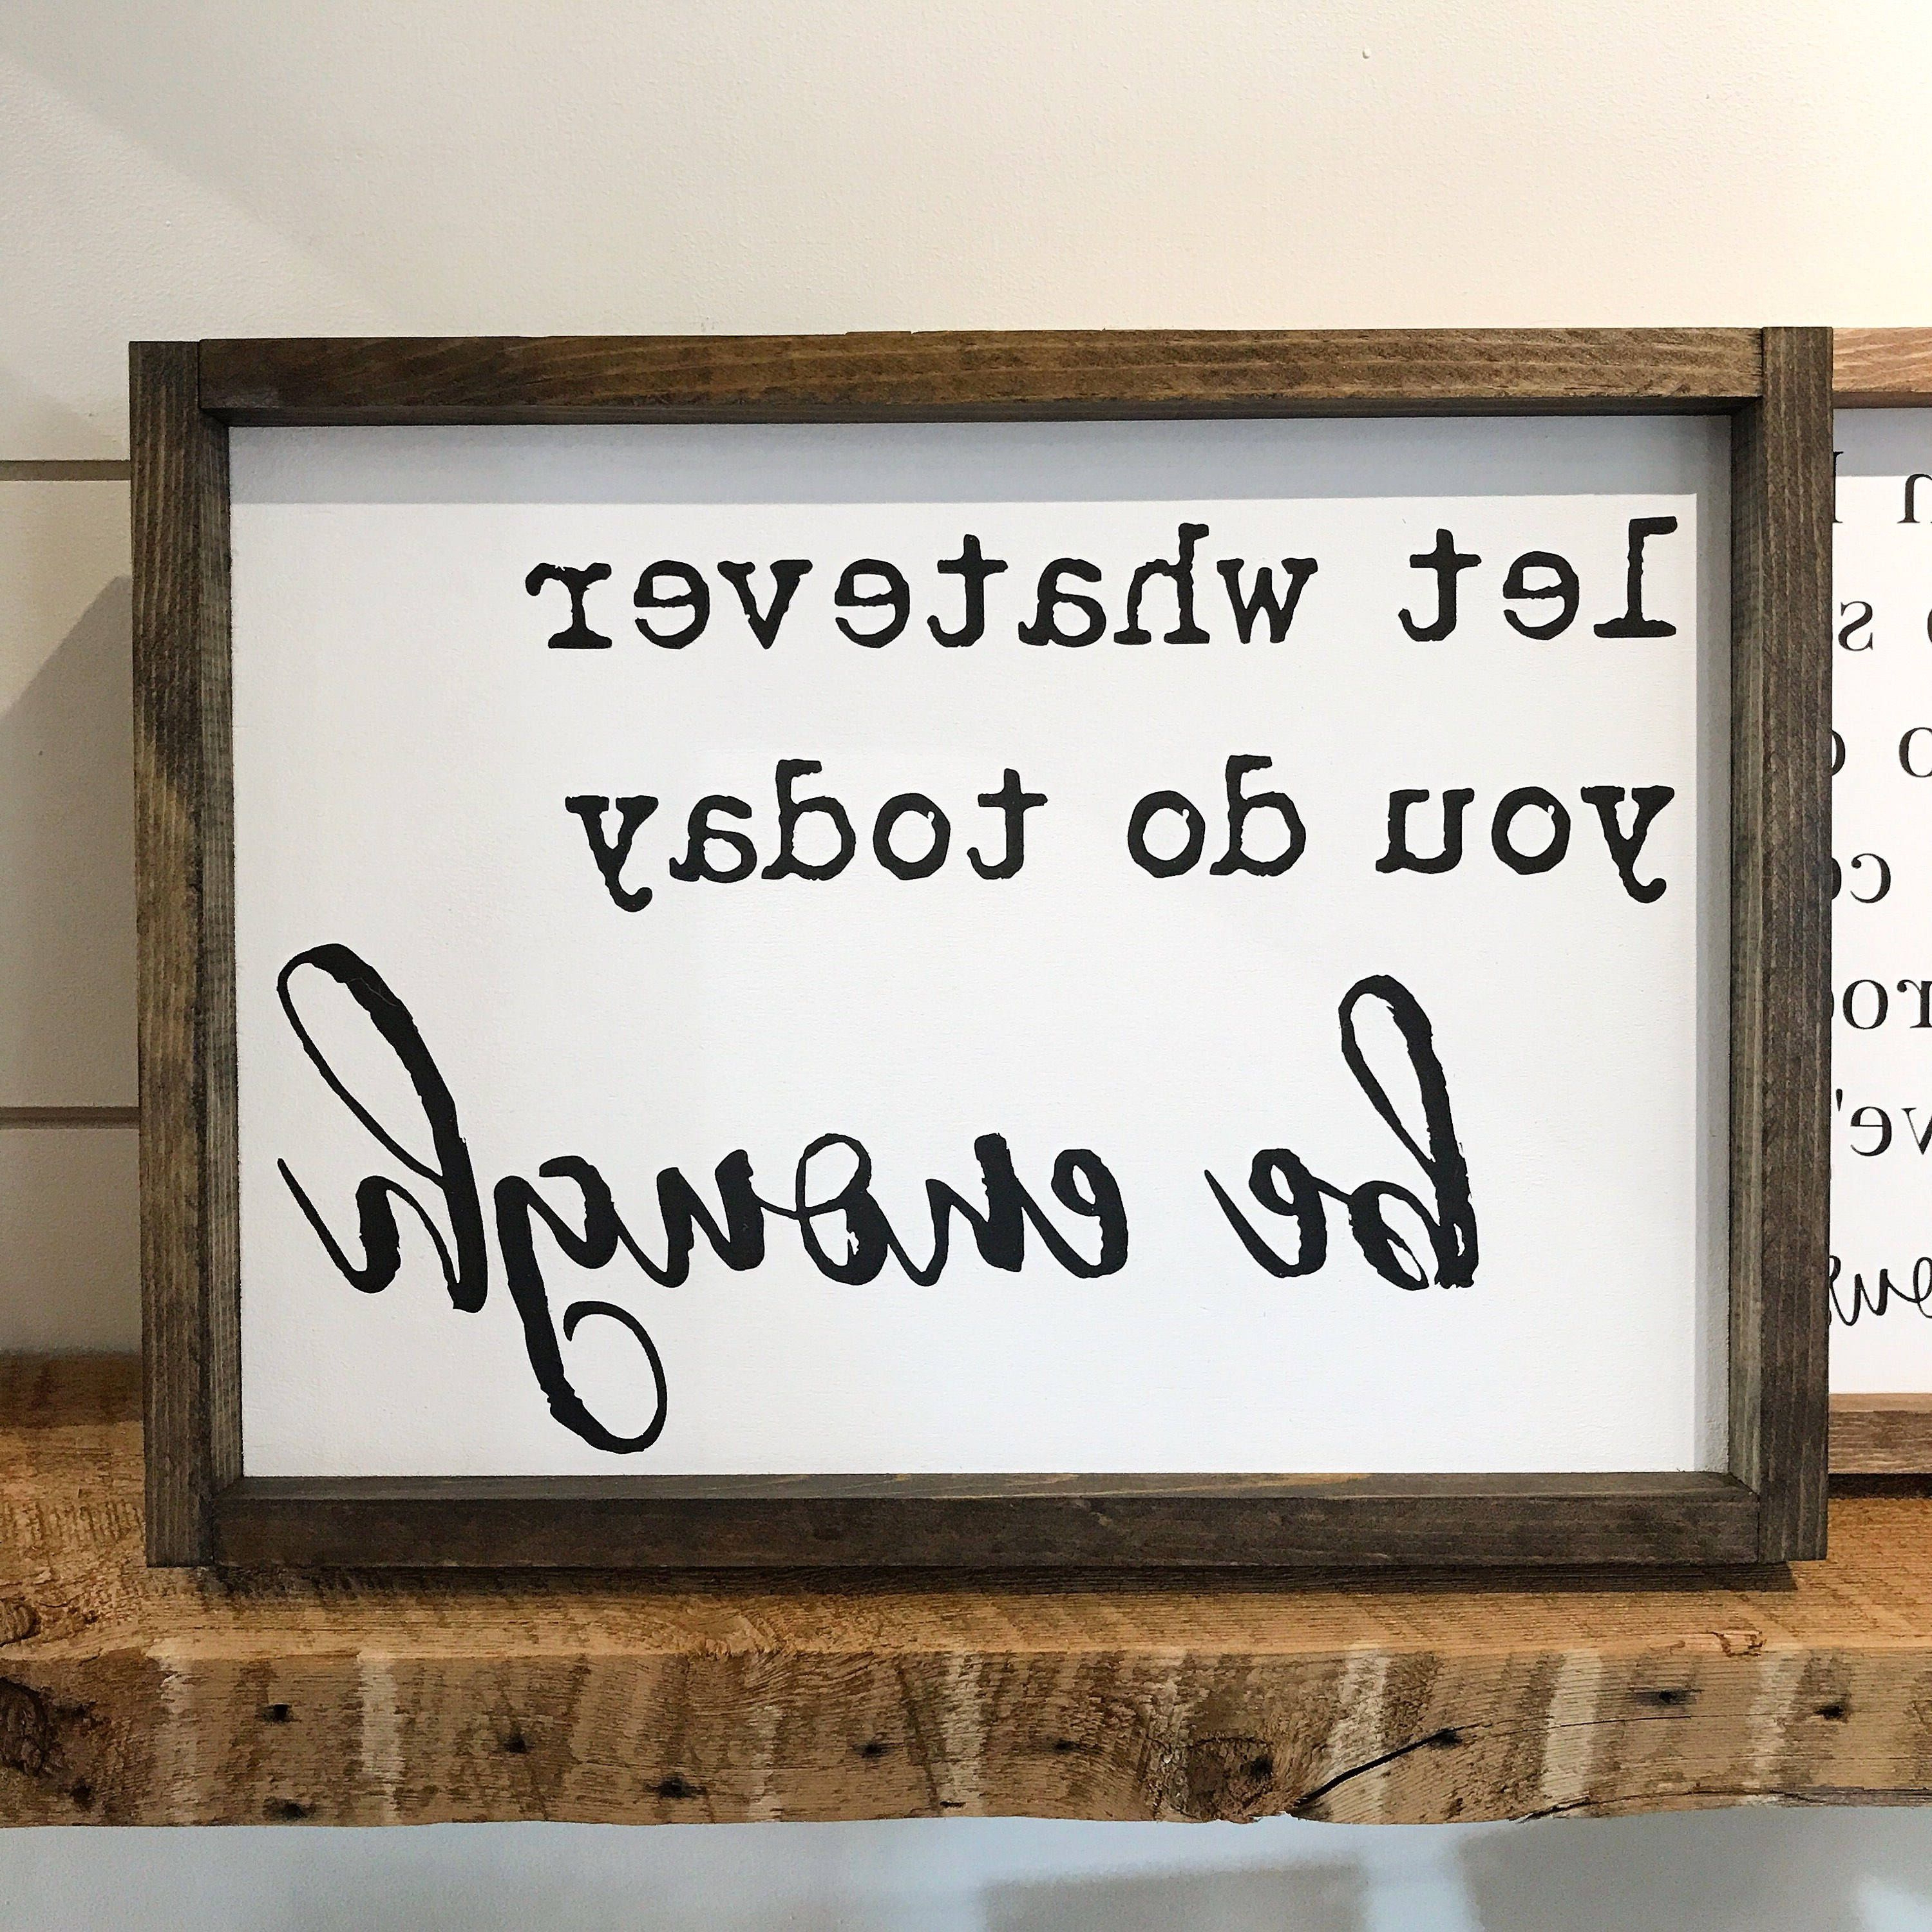 Let Whatever You Do Today Be Enough Framed Wood Sign, Inspirational With Regard To Most Recently Released Let Whatever You Do Today Be Enough Wood Wall Decor (View 11 of 20)